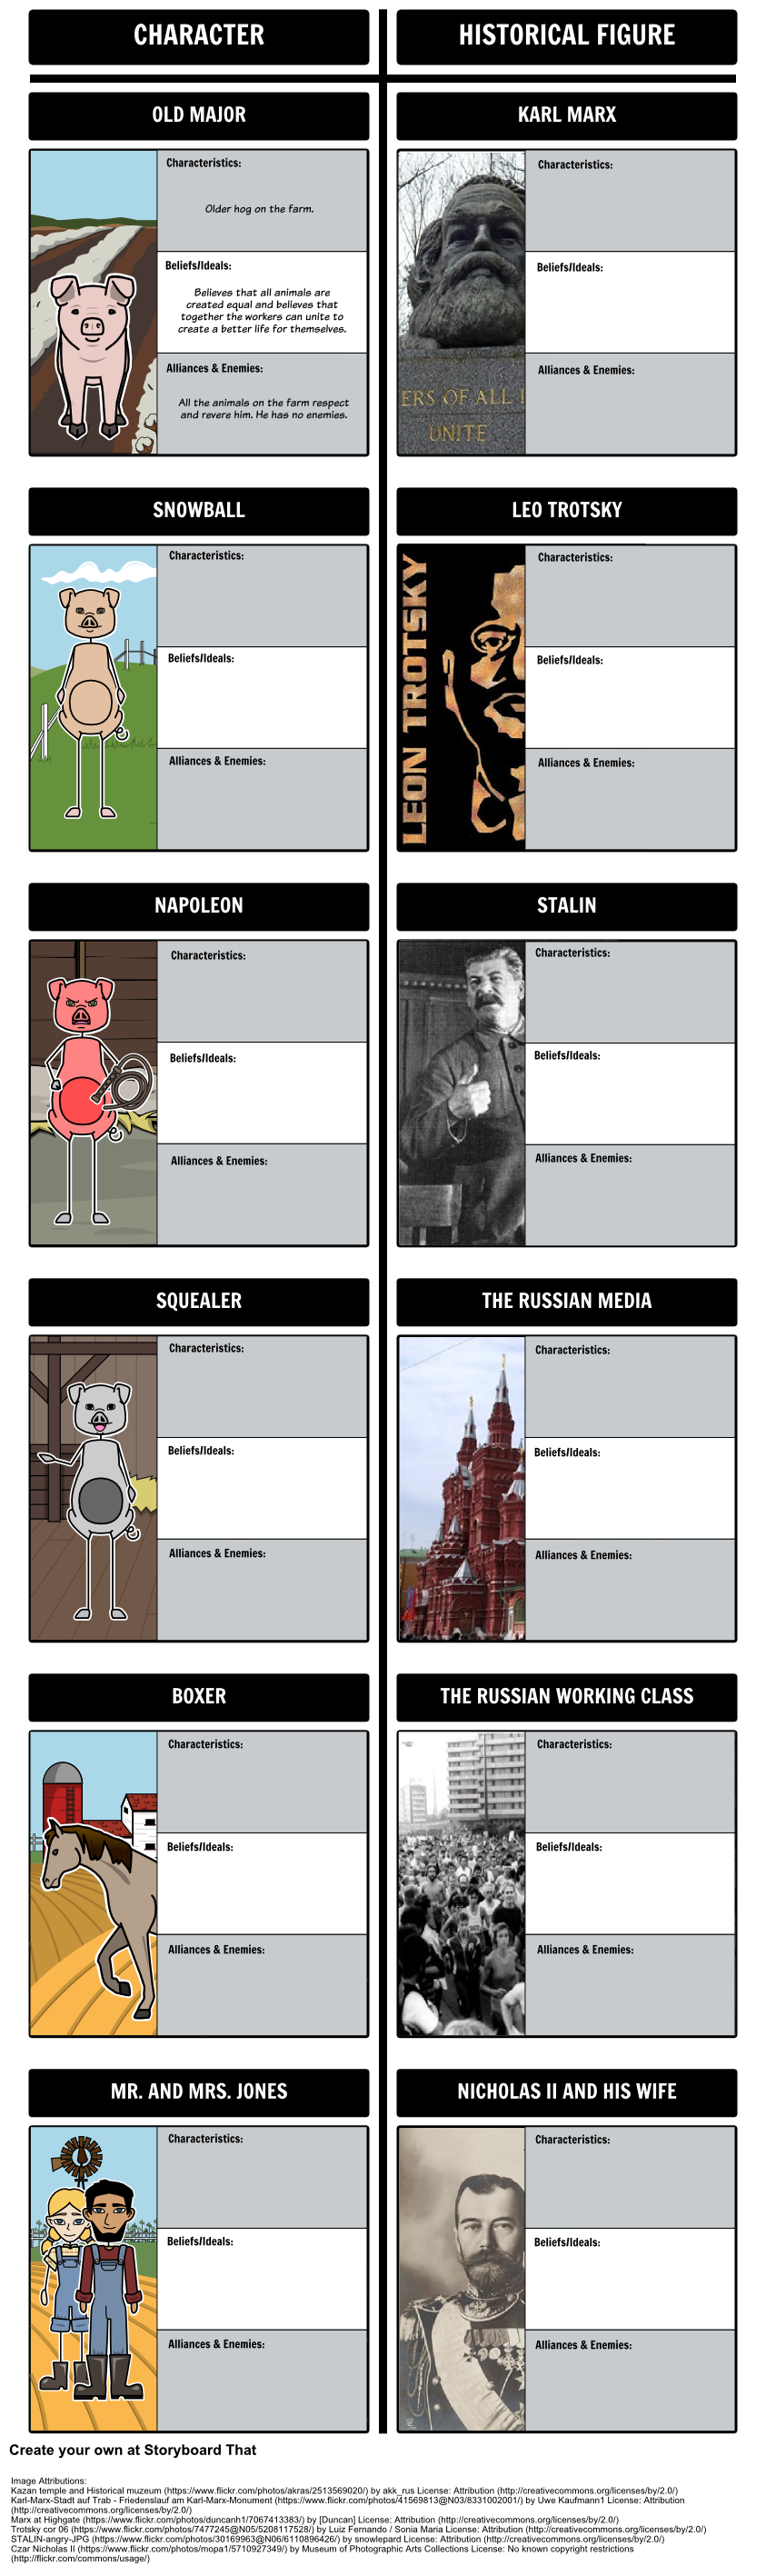 animal farm by george orwell character comparison using a t animal farm by george orwell character comparison using a t chart graphic organizer